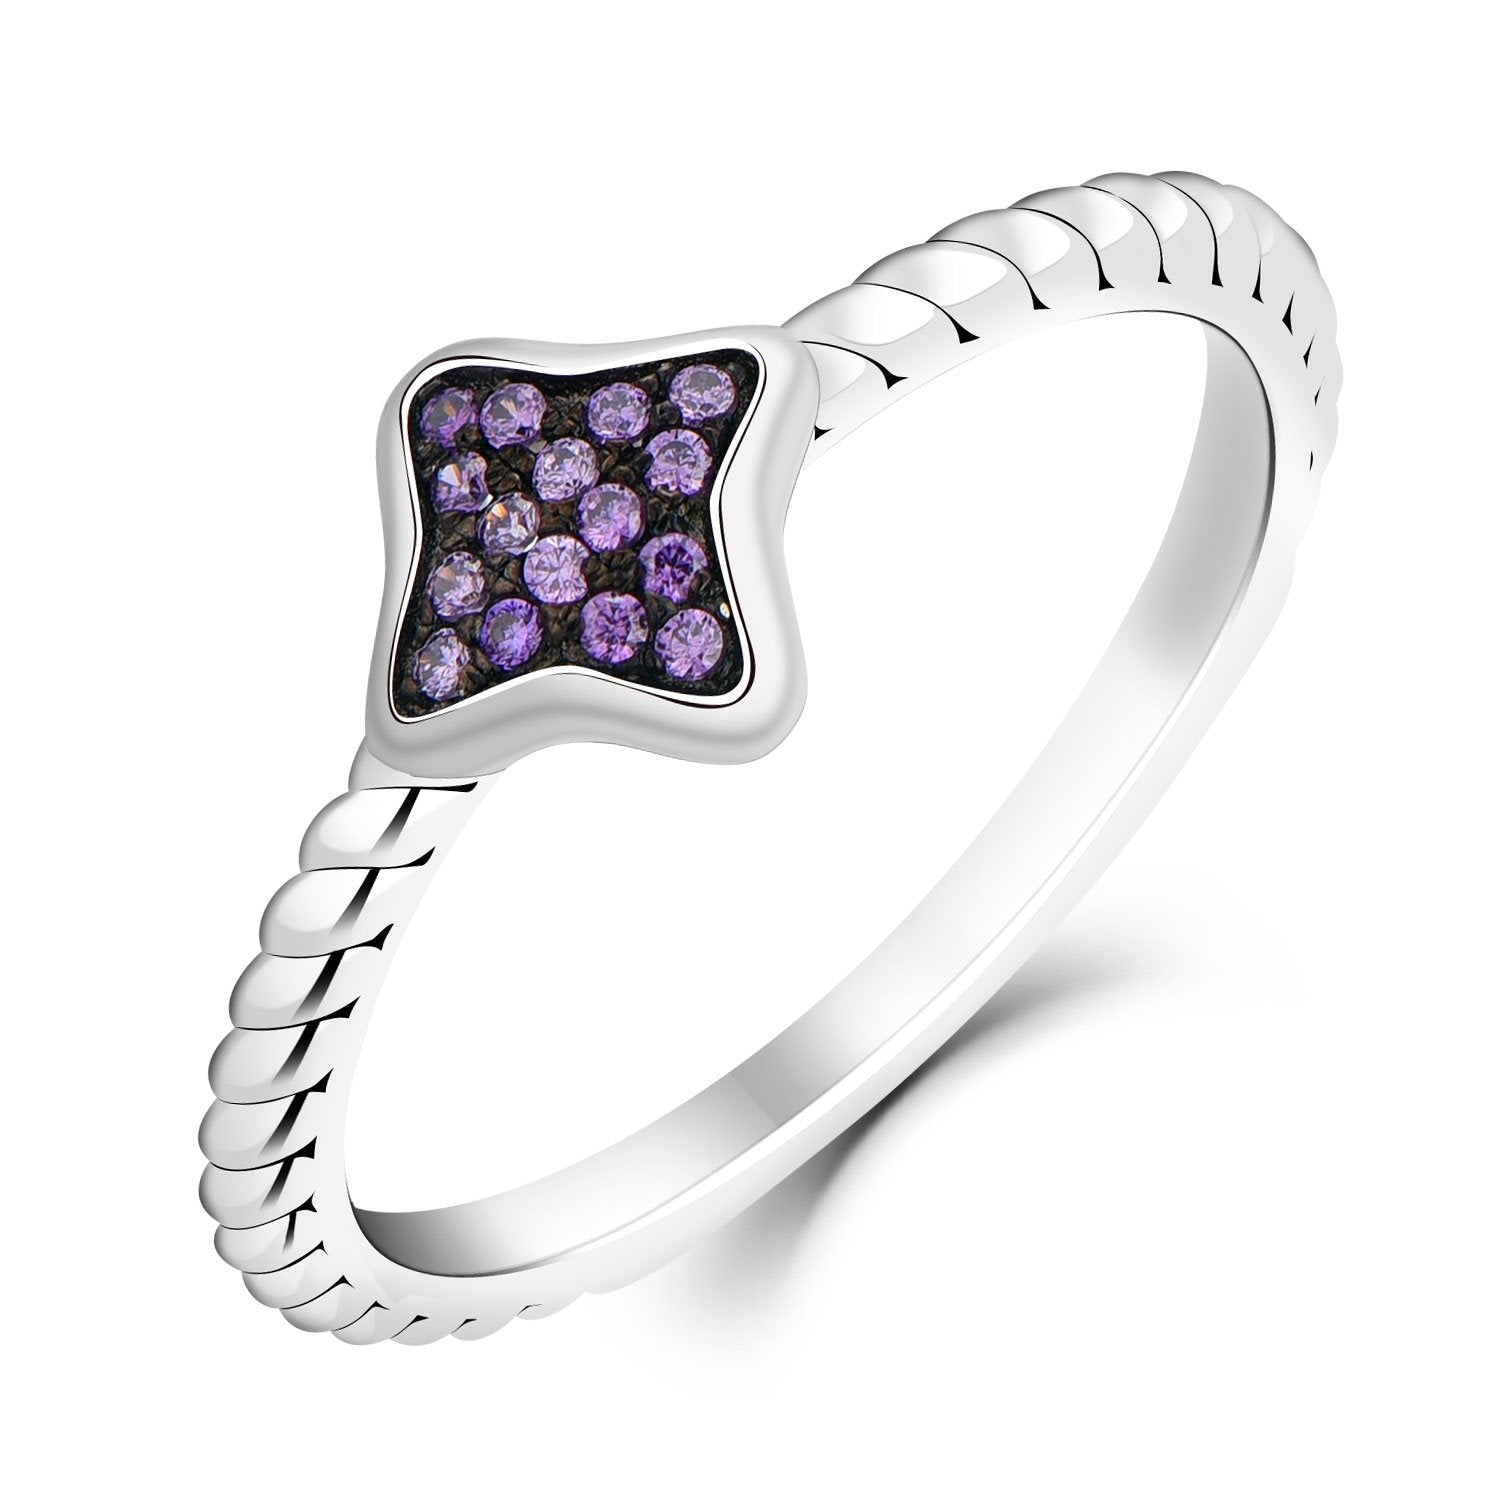 Farjary 14K White Gold Amethyst Diamond Ring